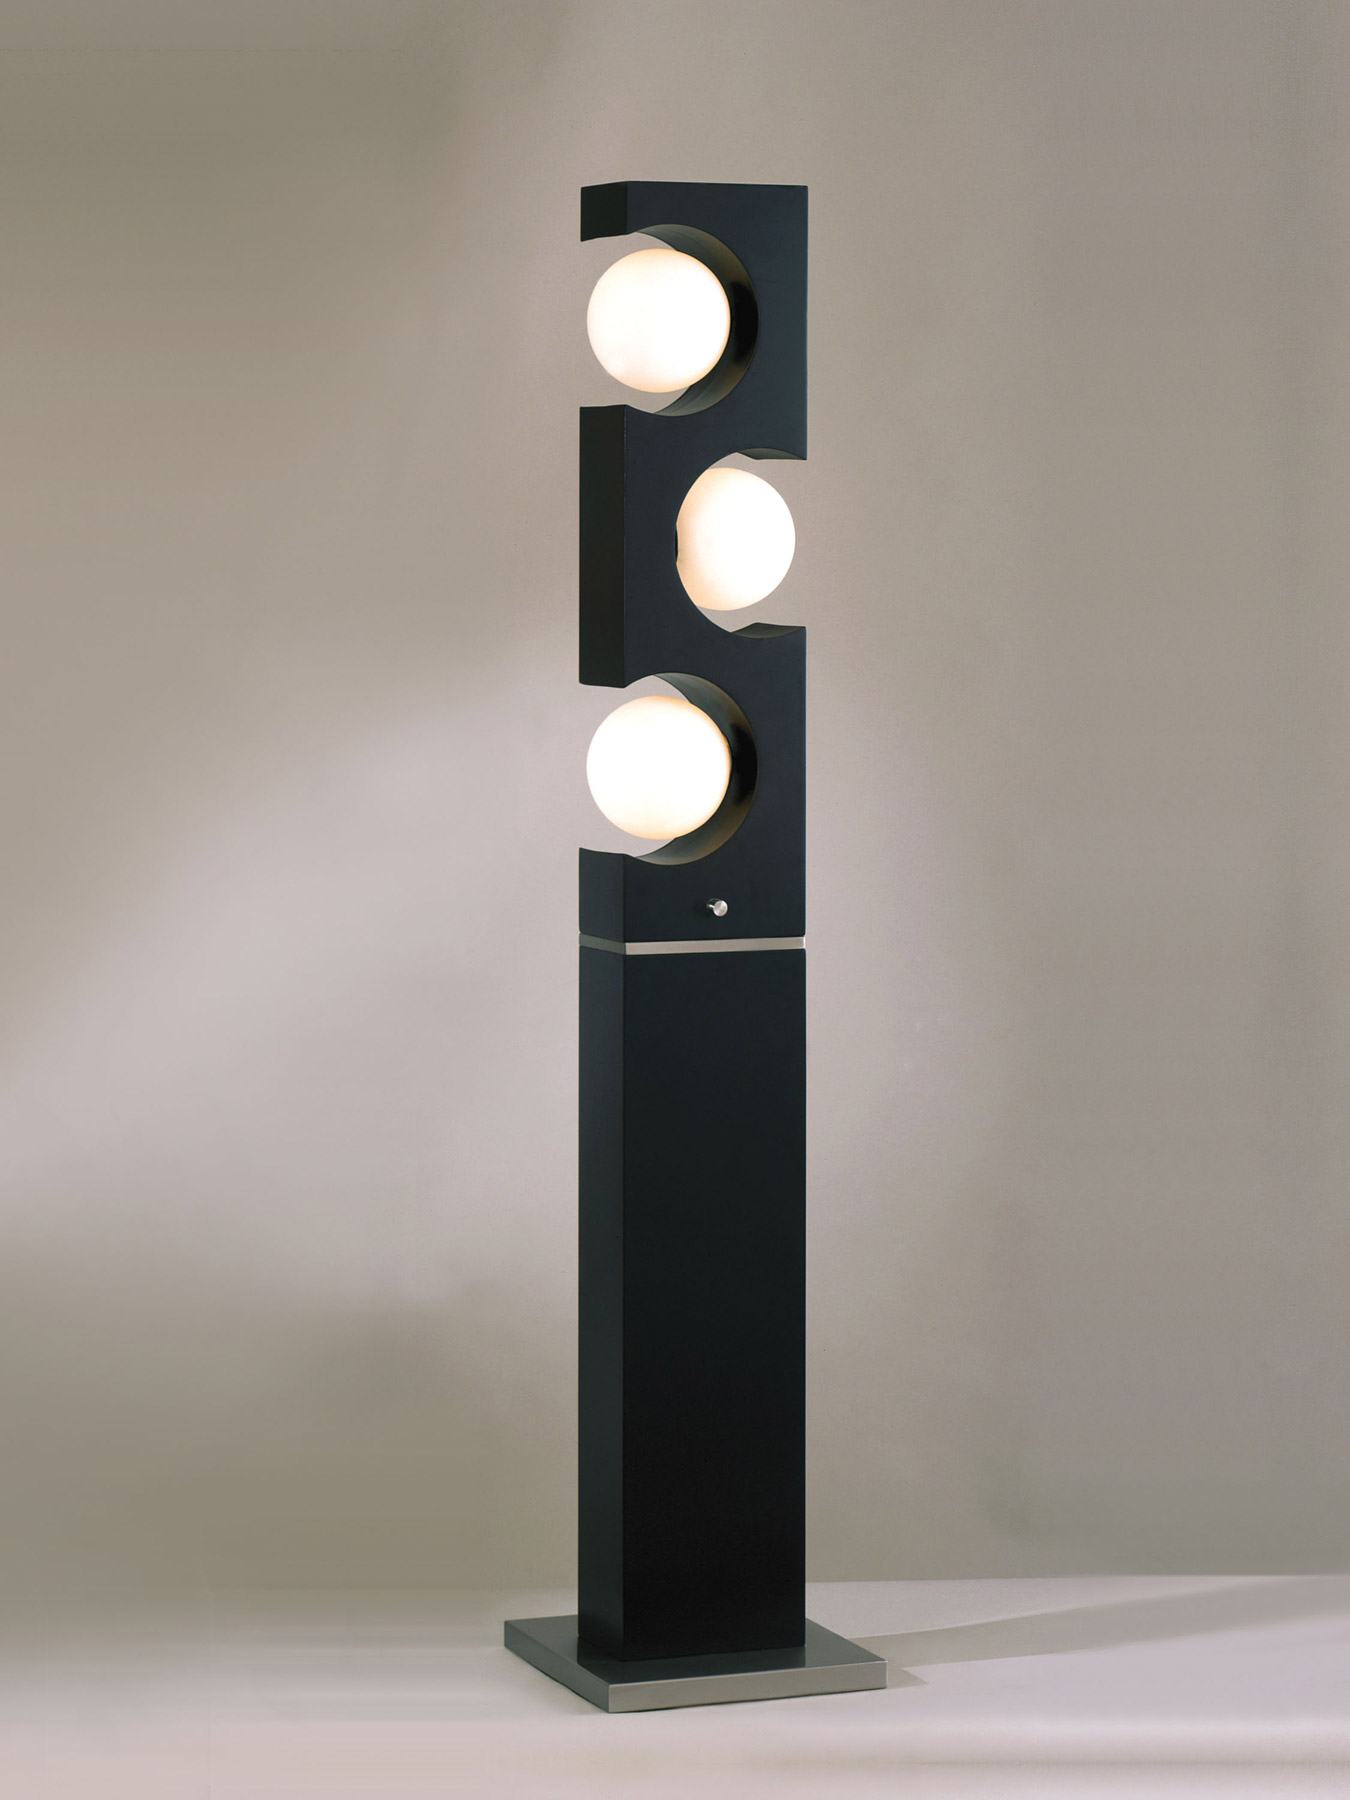 Nova lighting 2343 nova 1960 floor lamp aloadofball Image collections